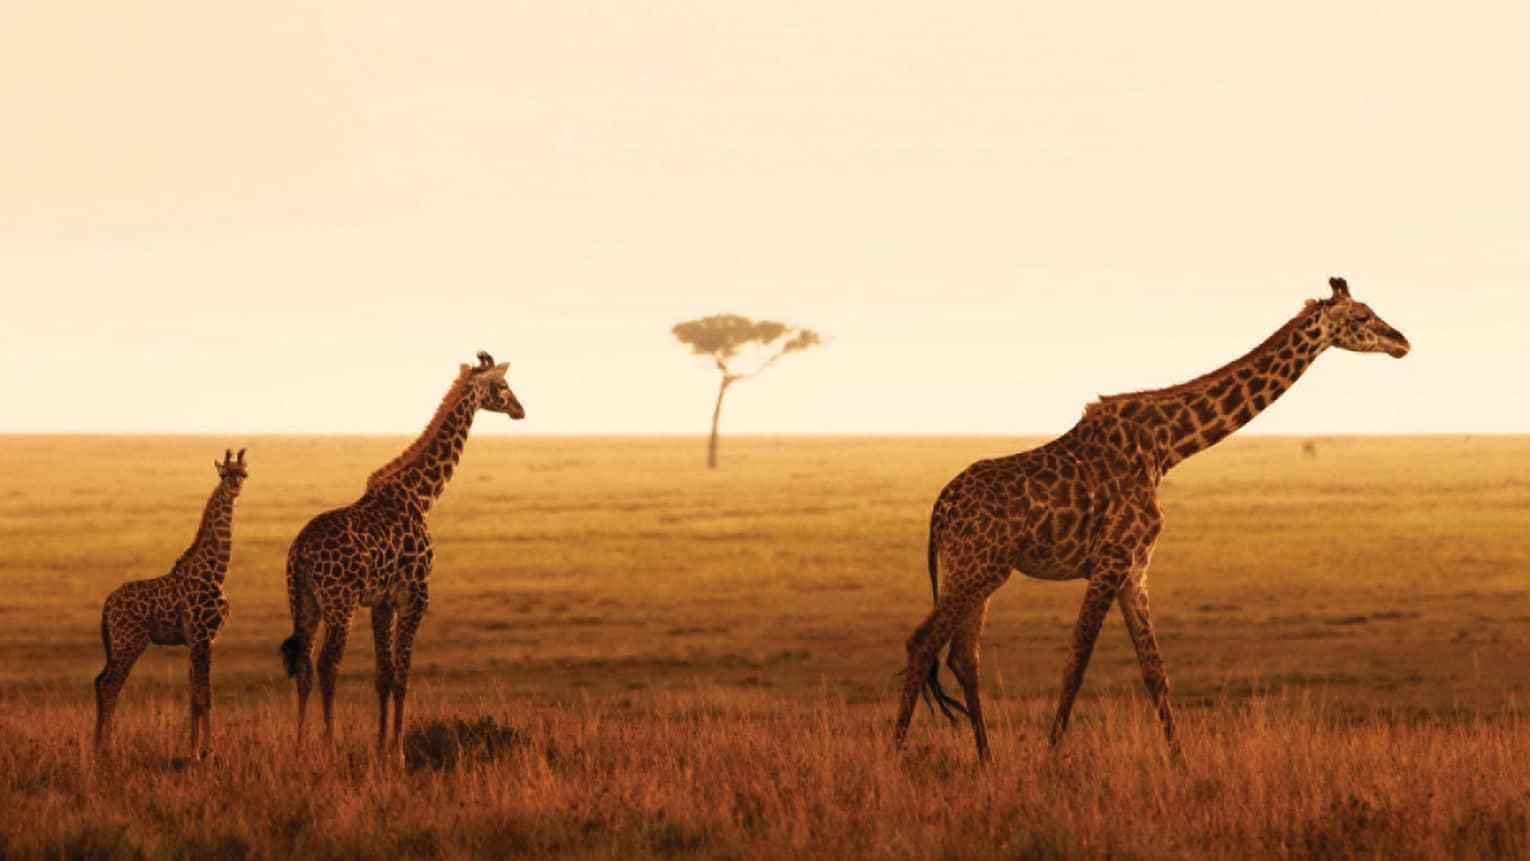 Giraffe family walks along grassy plain during orange sunset